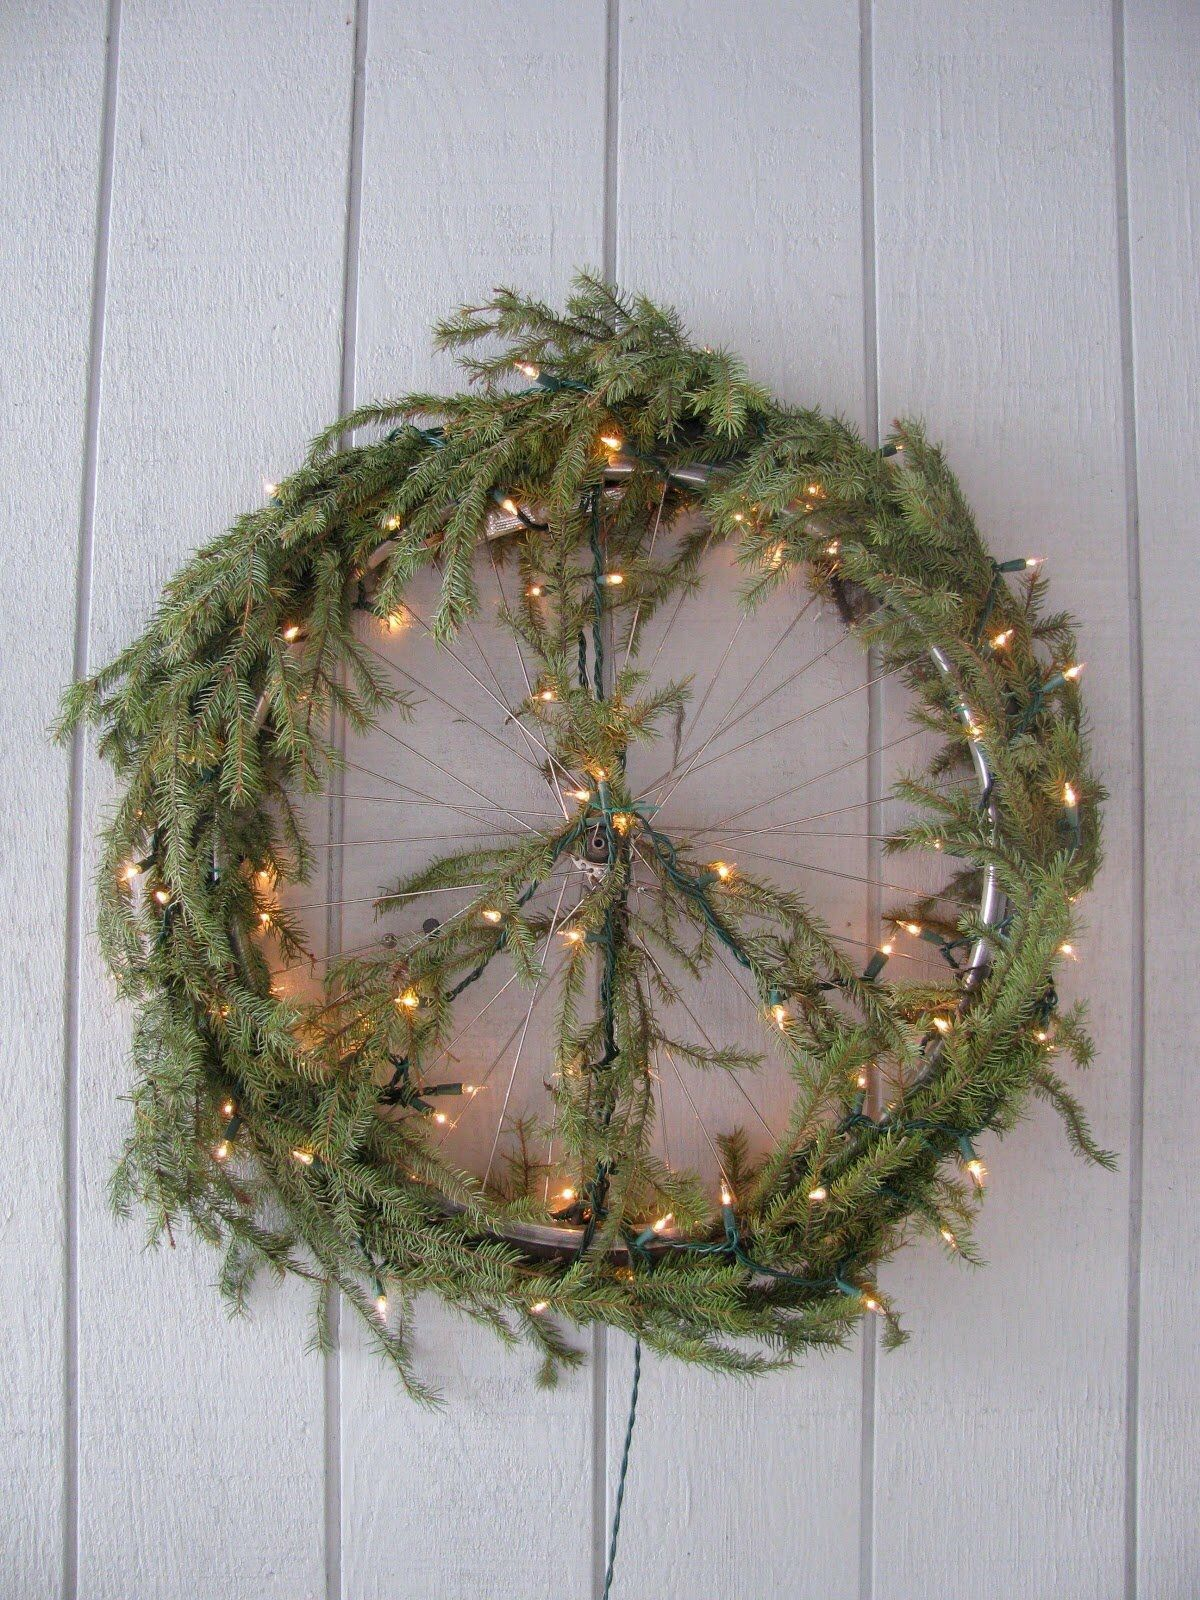 Peace sign made from tree branches & lights